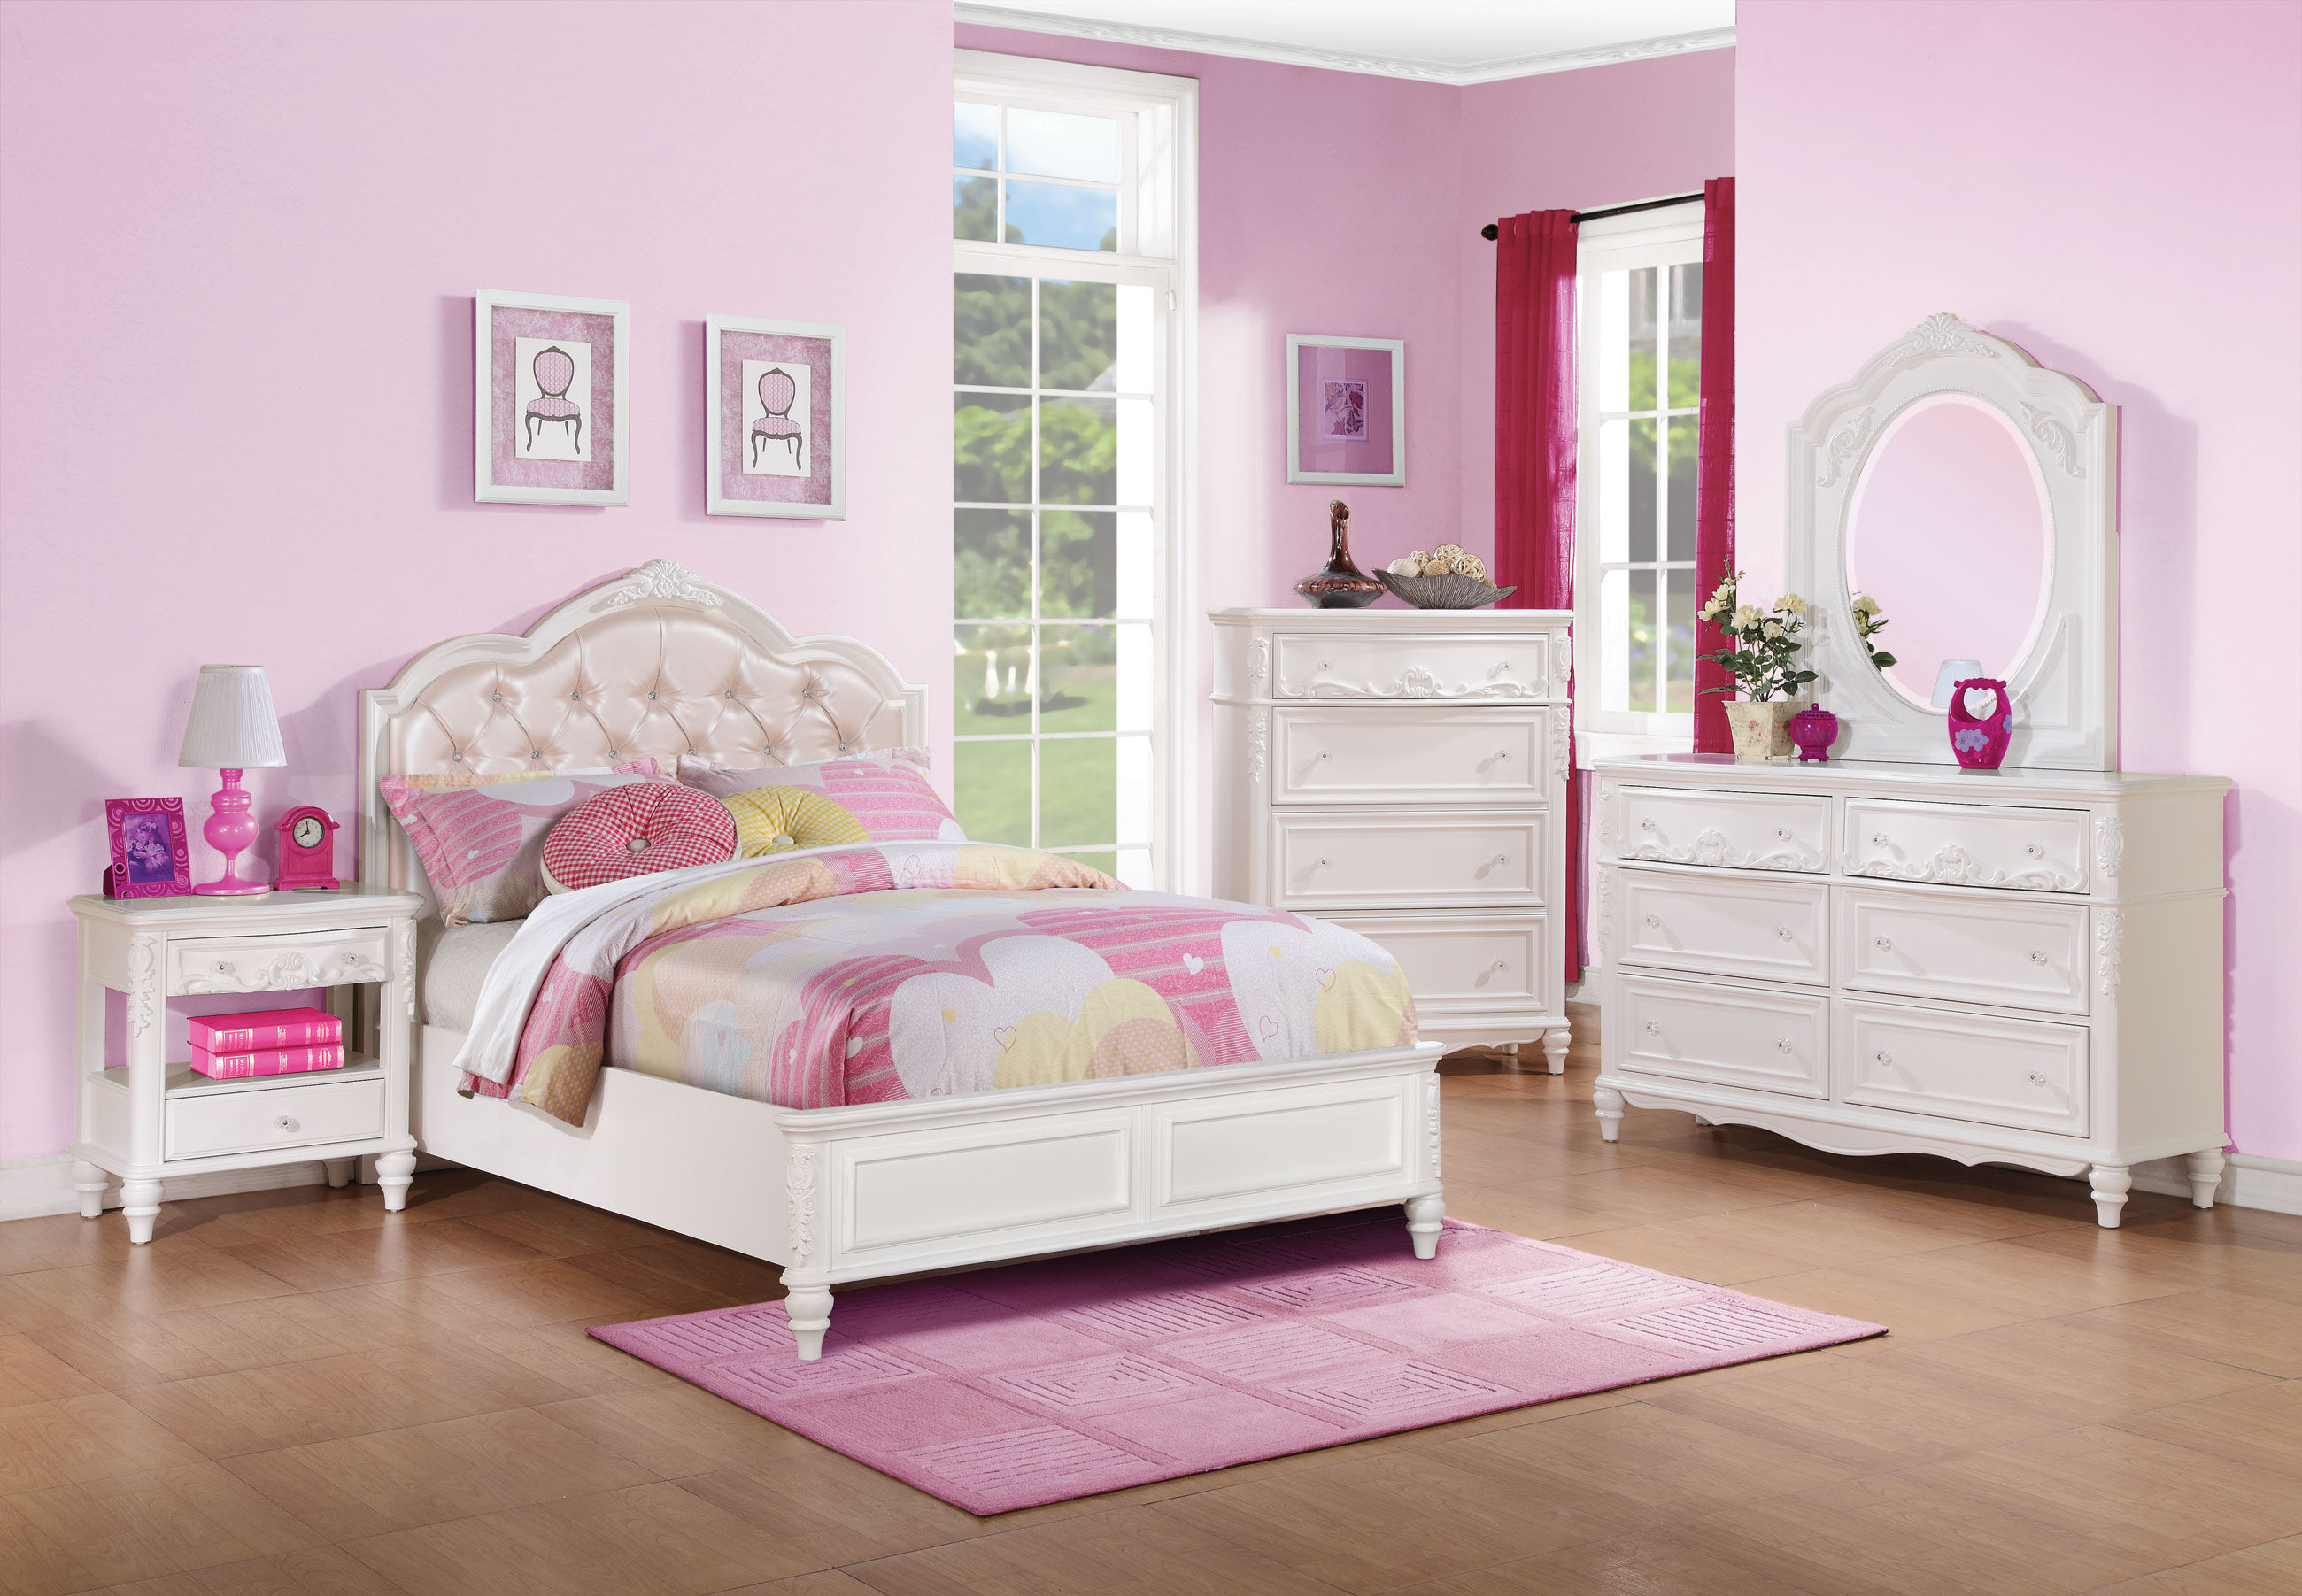 princess twin products sweetheart ahfa youth bed dealer upholstered furniture bedroom samuel lawrence item locator footboard storage with